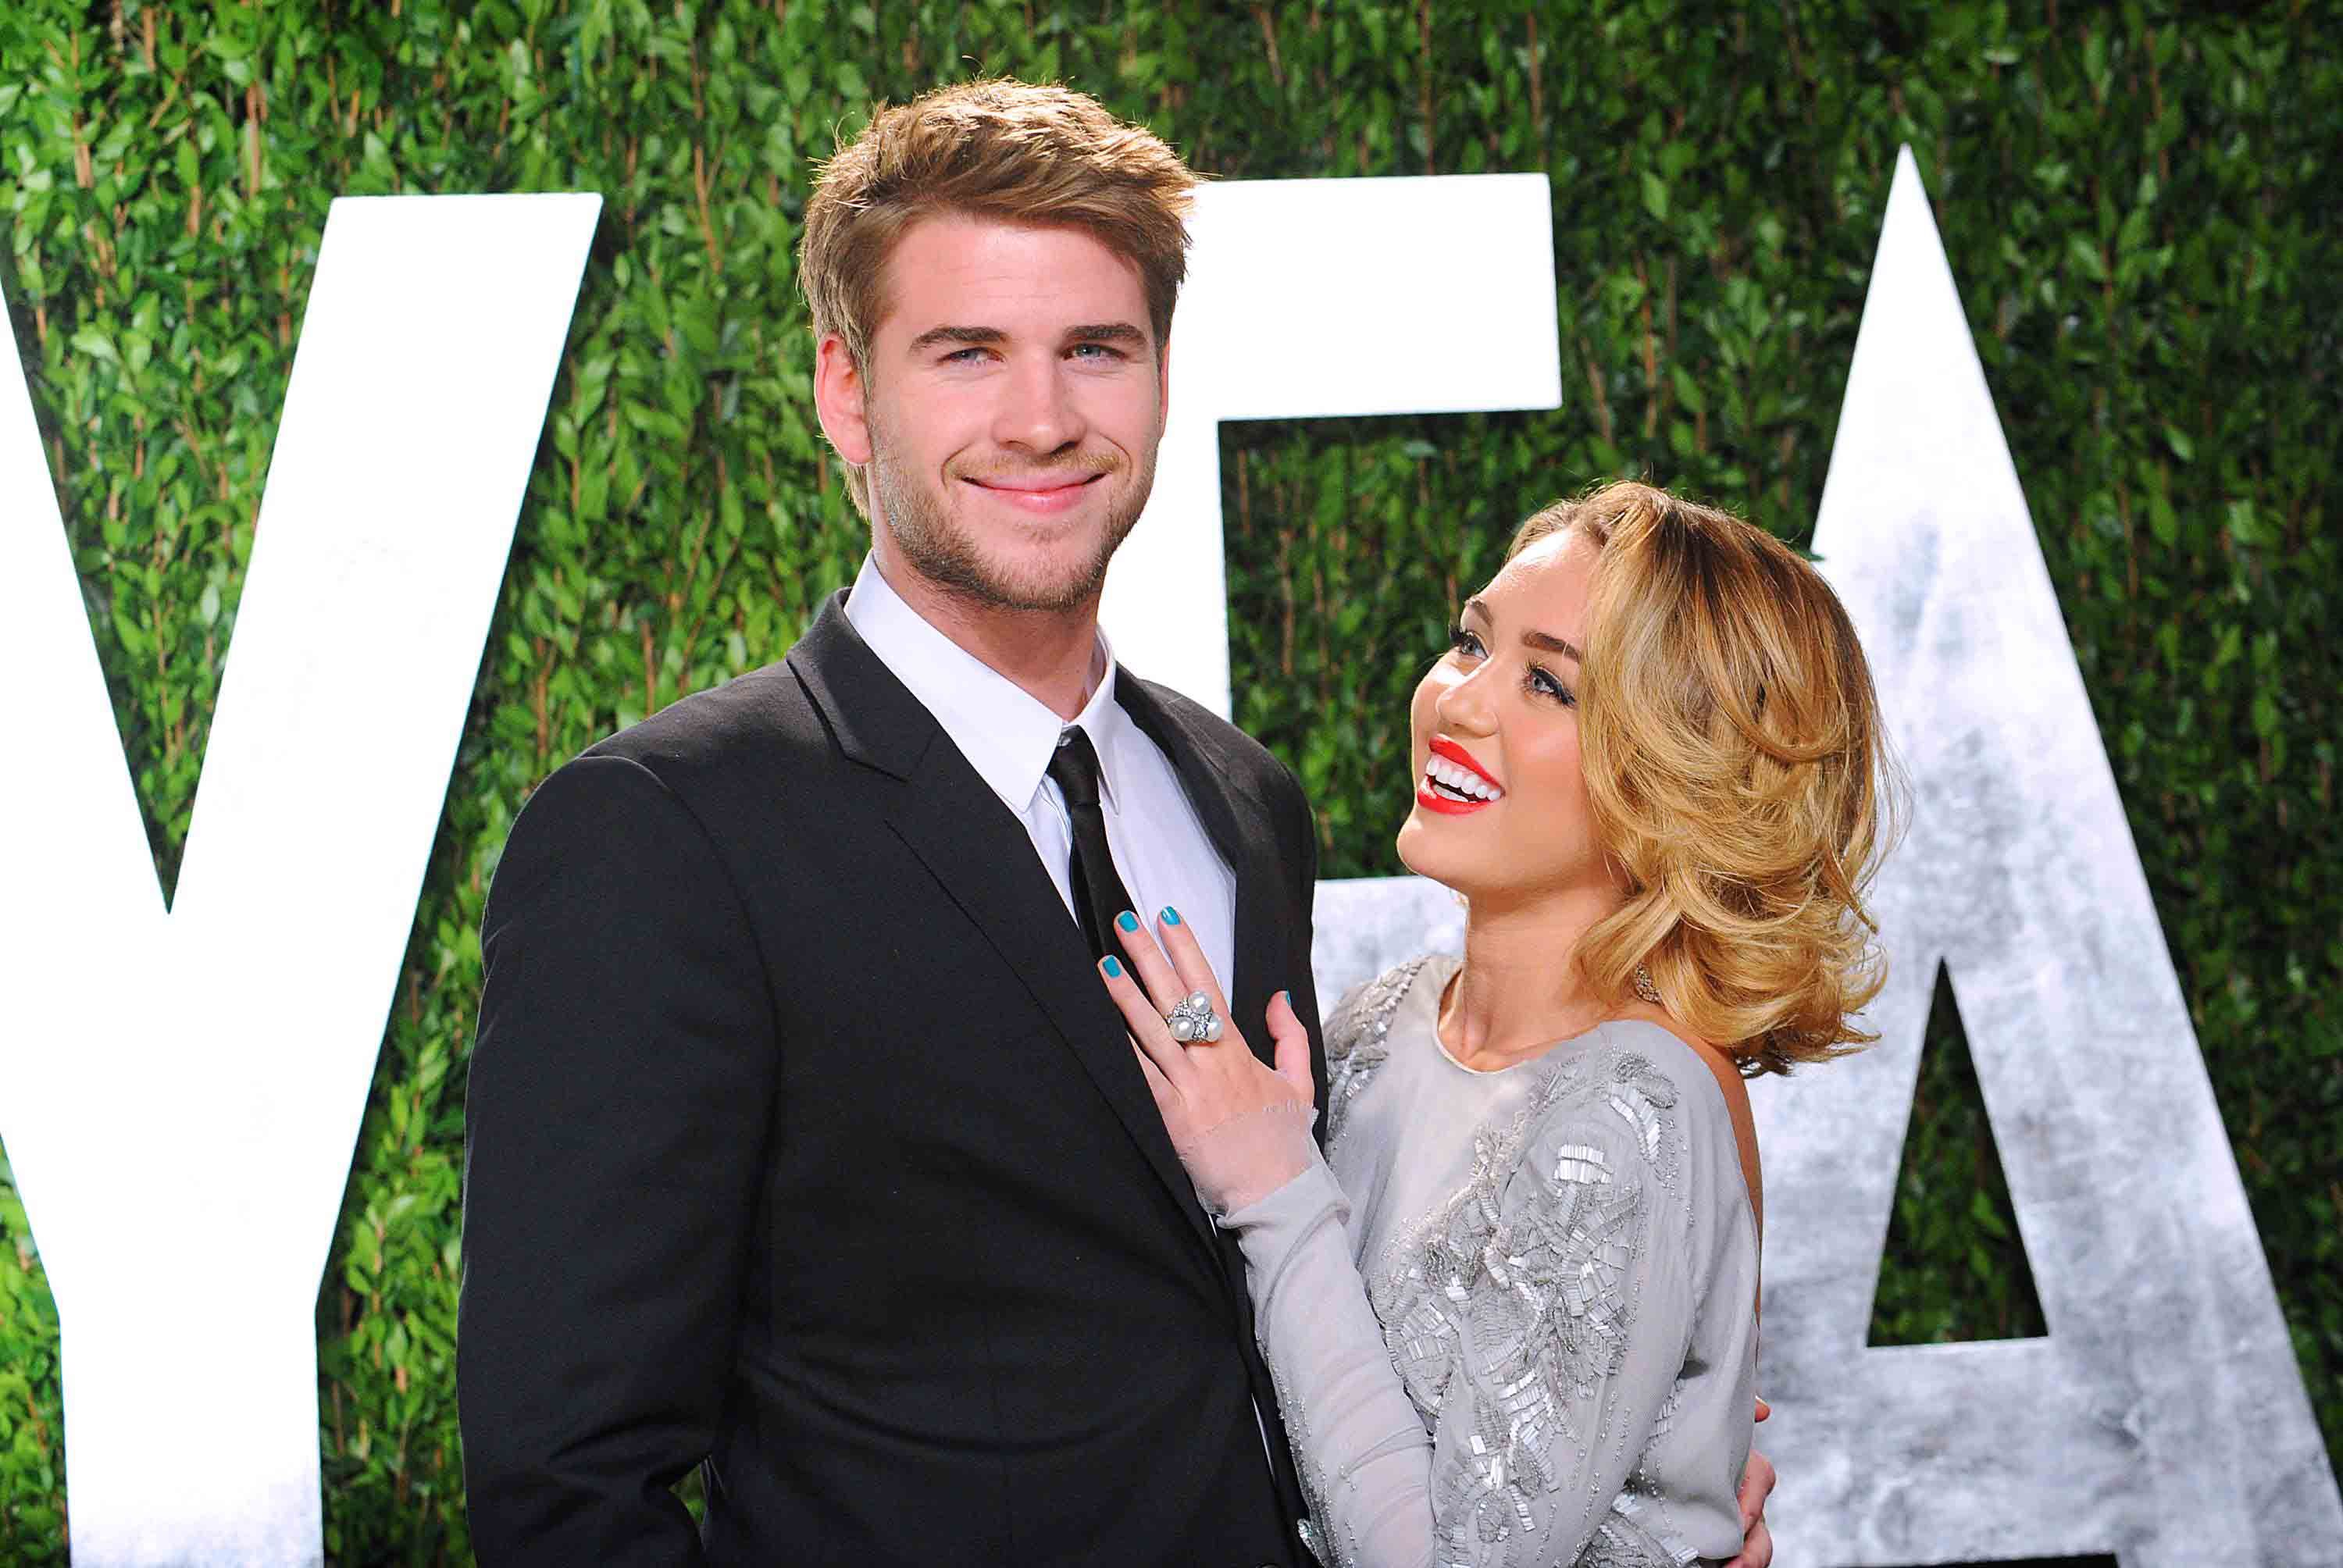 Did Miley Cyrus And Liam Hemsworth Just Get Married